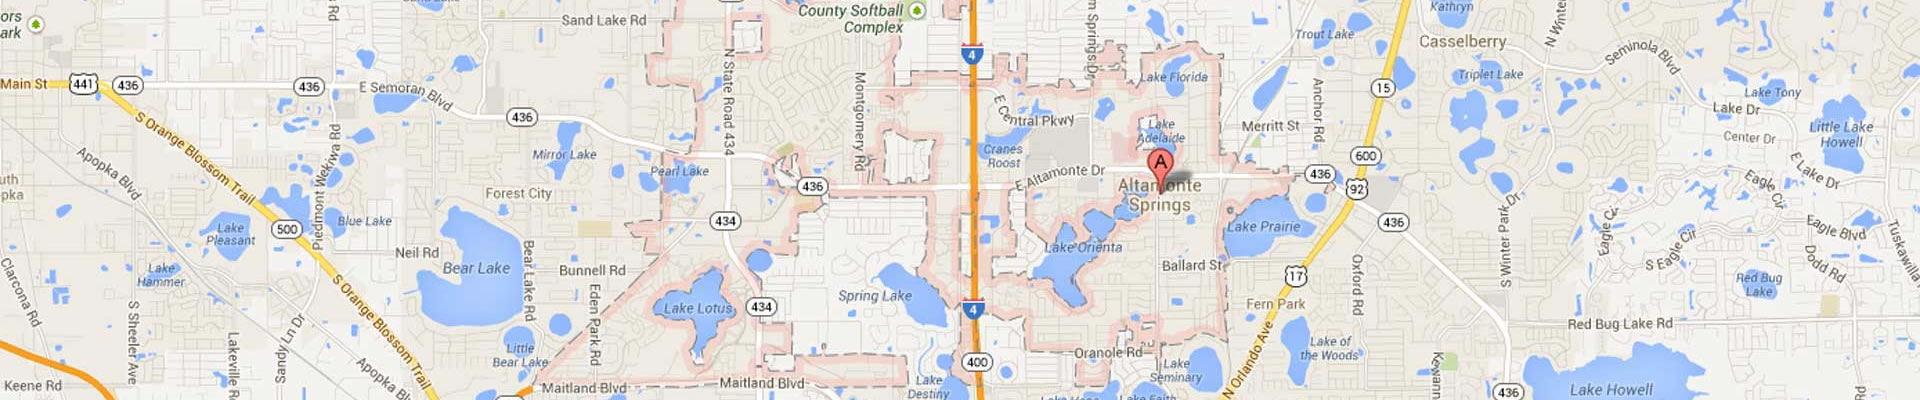 Altamonte Springs Subway Locations